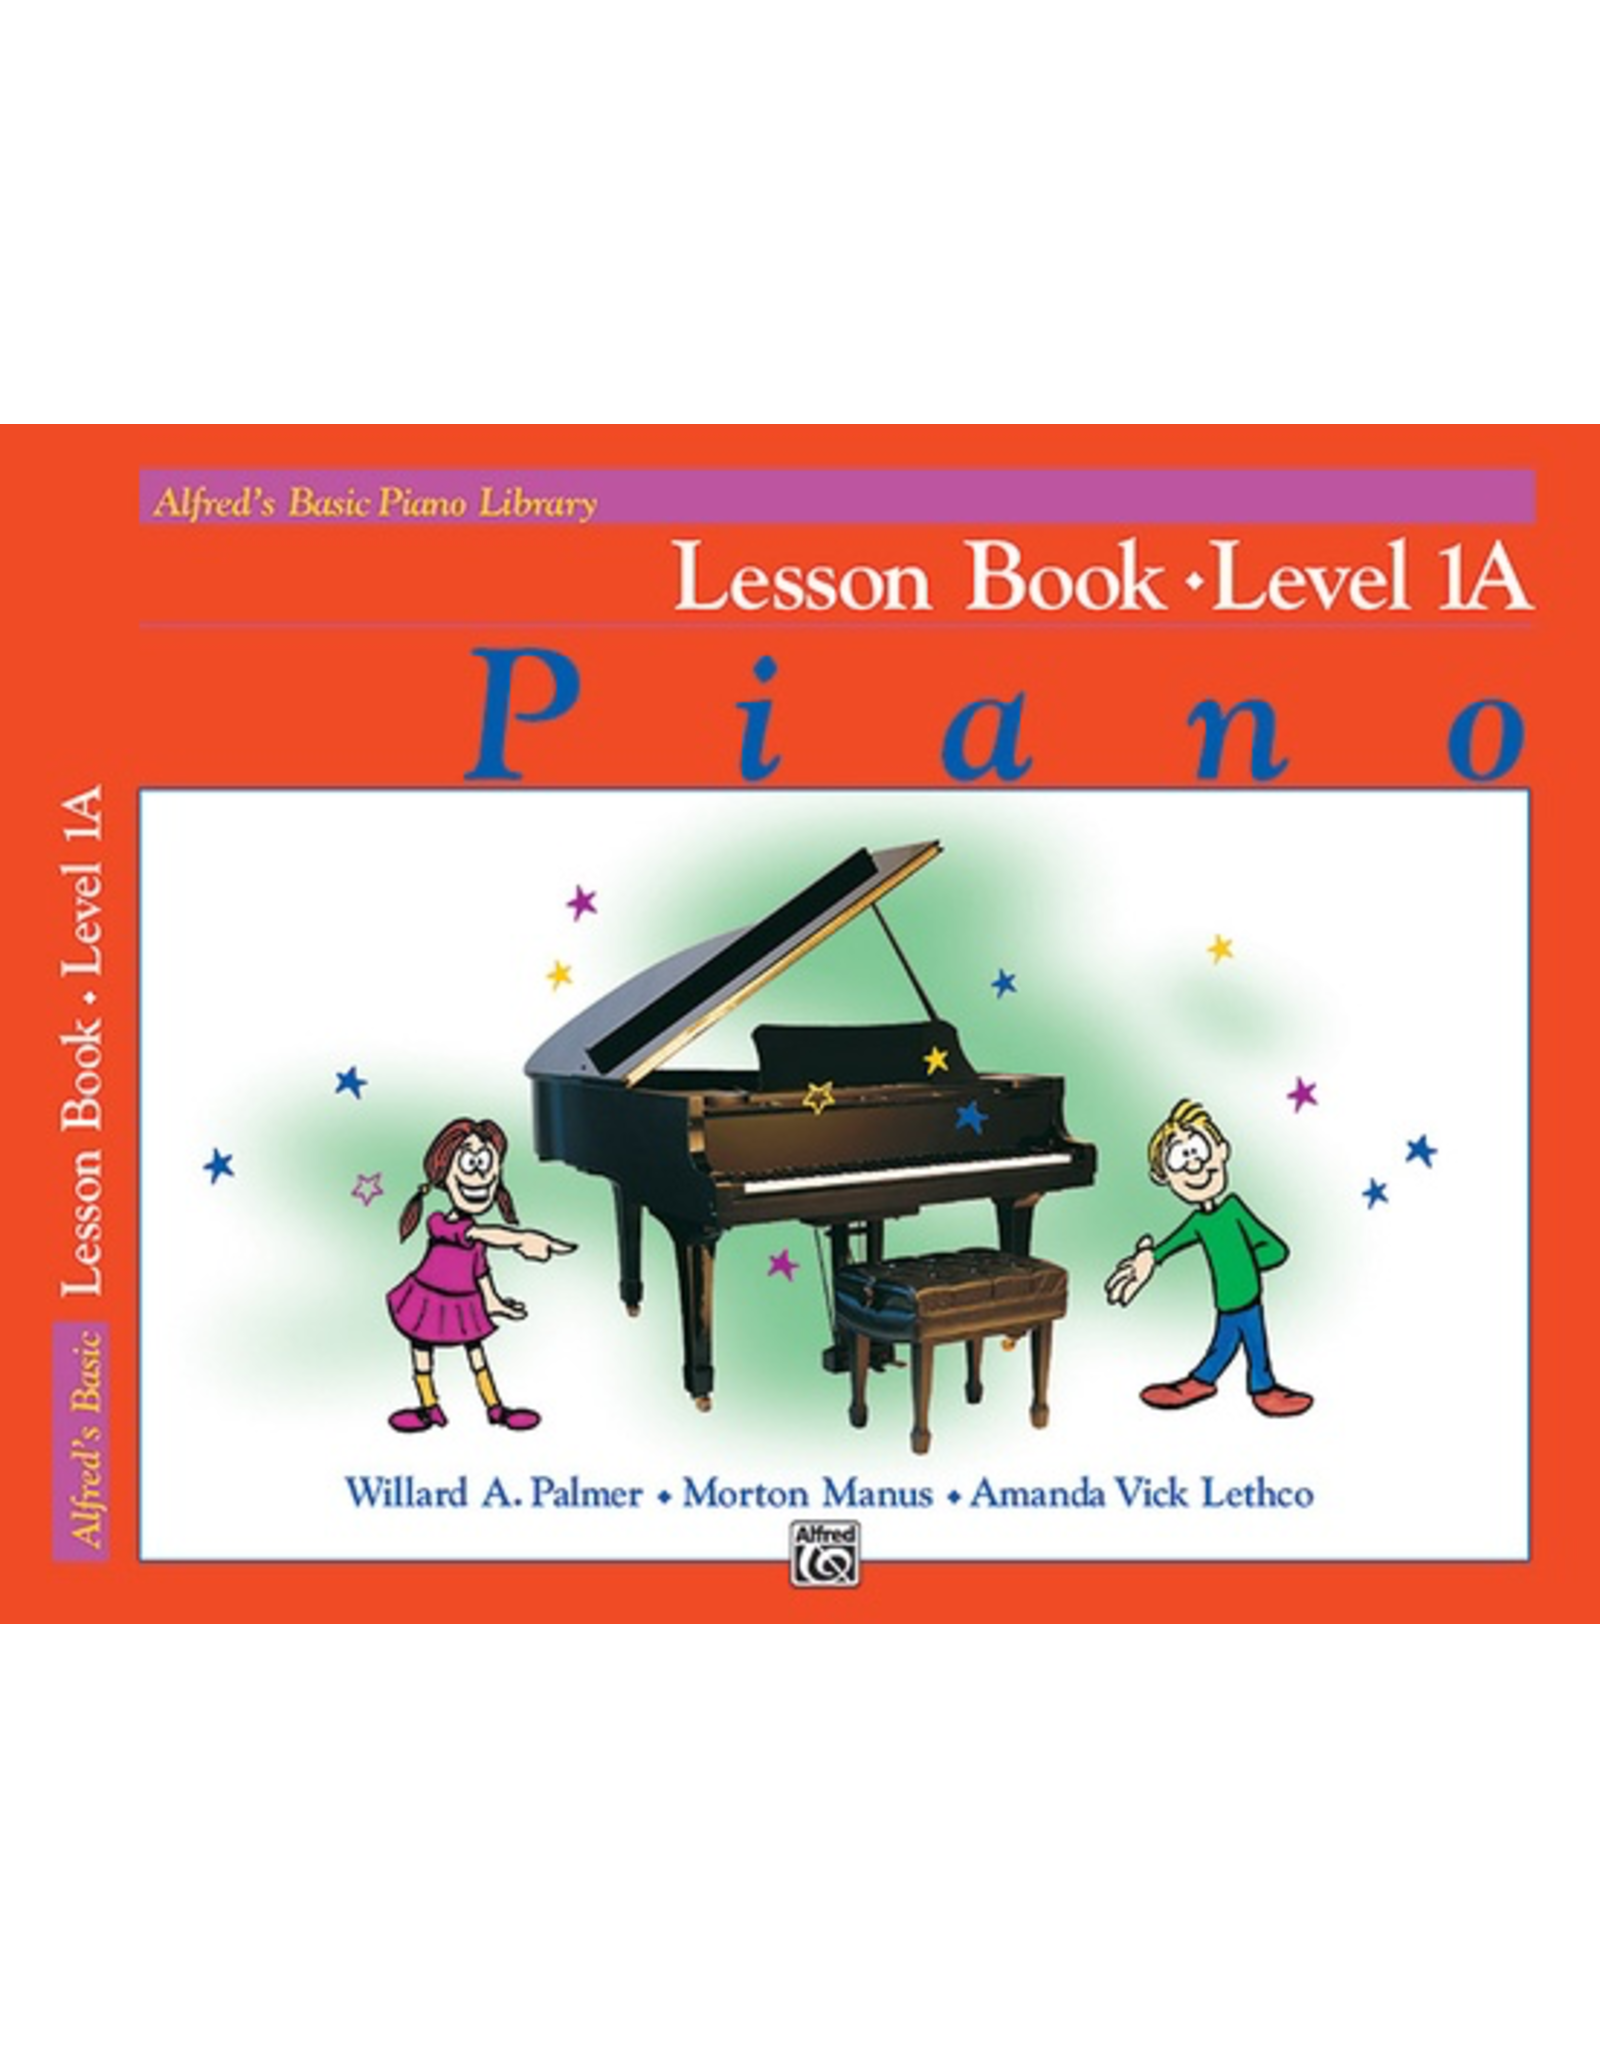 Alfred Alfred's Basic Piano Library Lesson, Level 1A